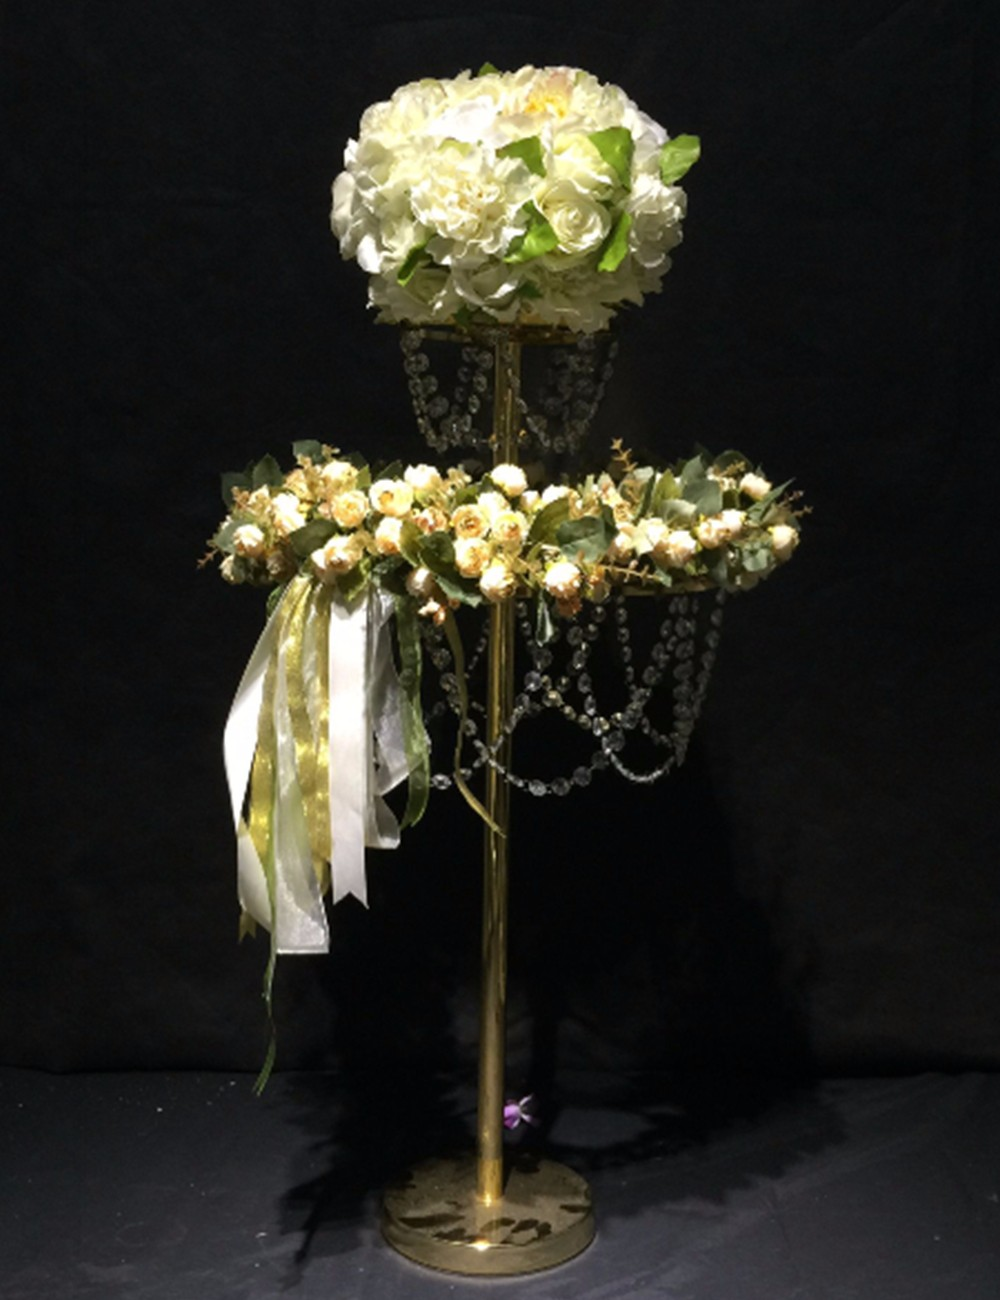 Candle Holders 80cm Tall Crystal Table Centerpiece Gold Flower Stand Wedding Props Elegant In Style